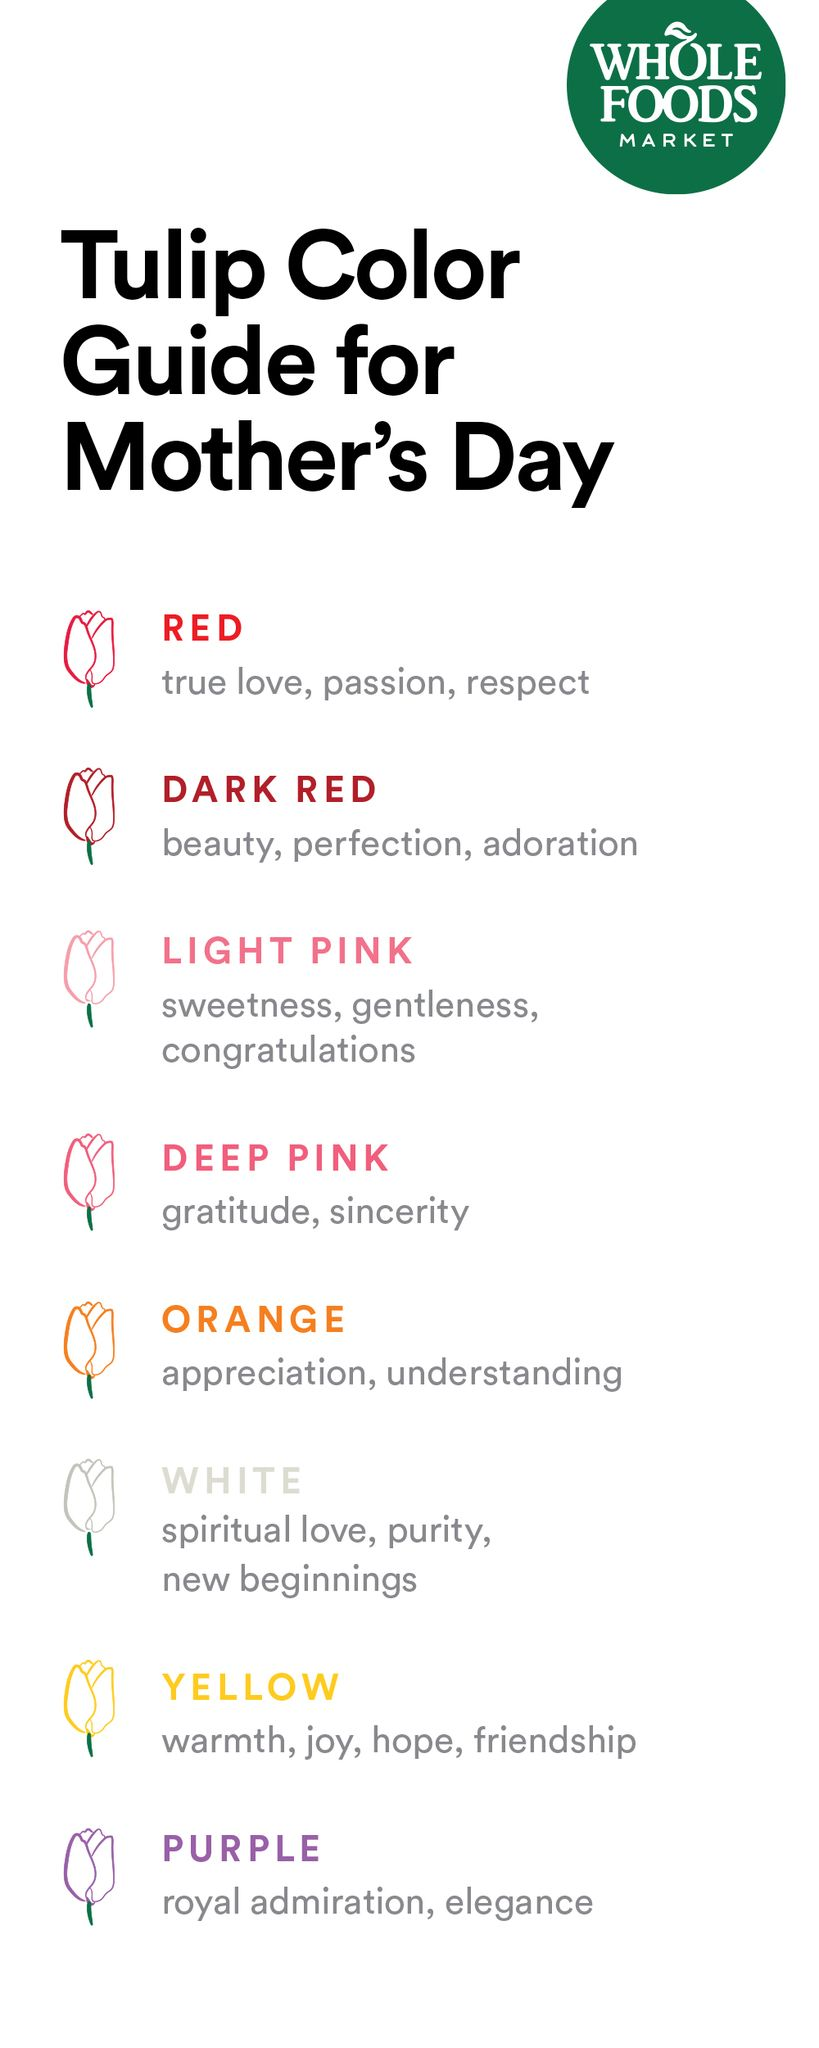 Discover The Meaning Of Every Tulip Color Tulip Colors Tulips Meaning Tulips